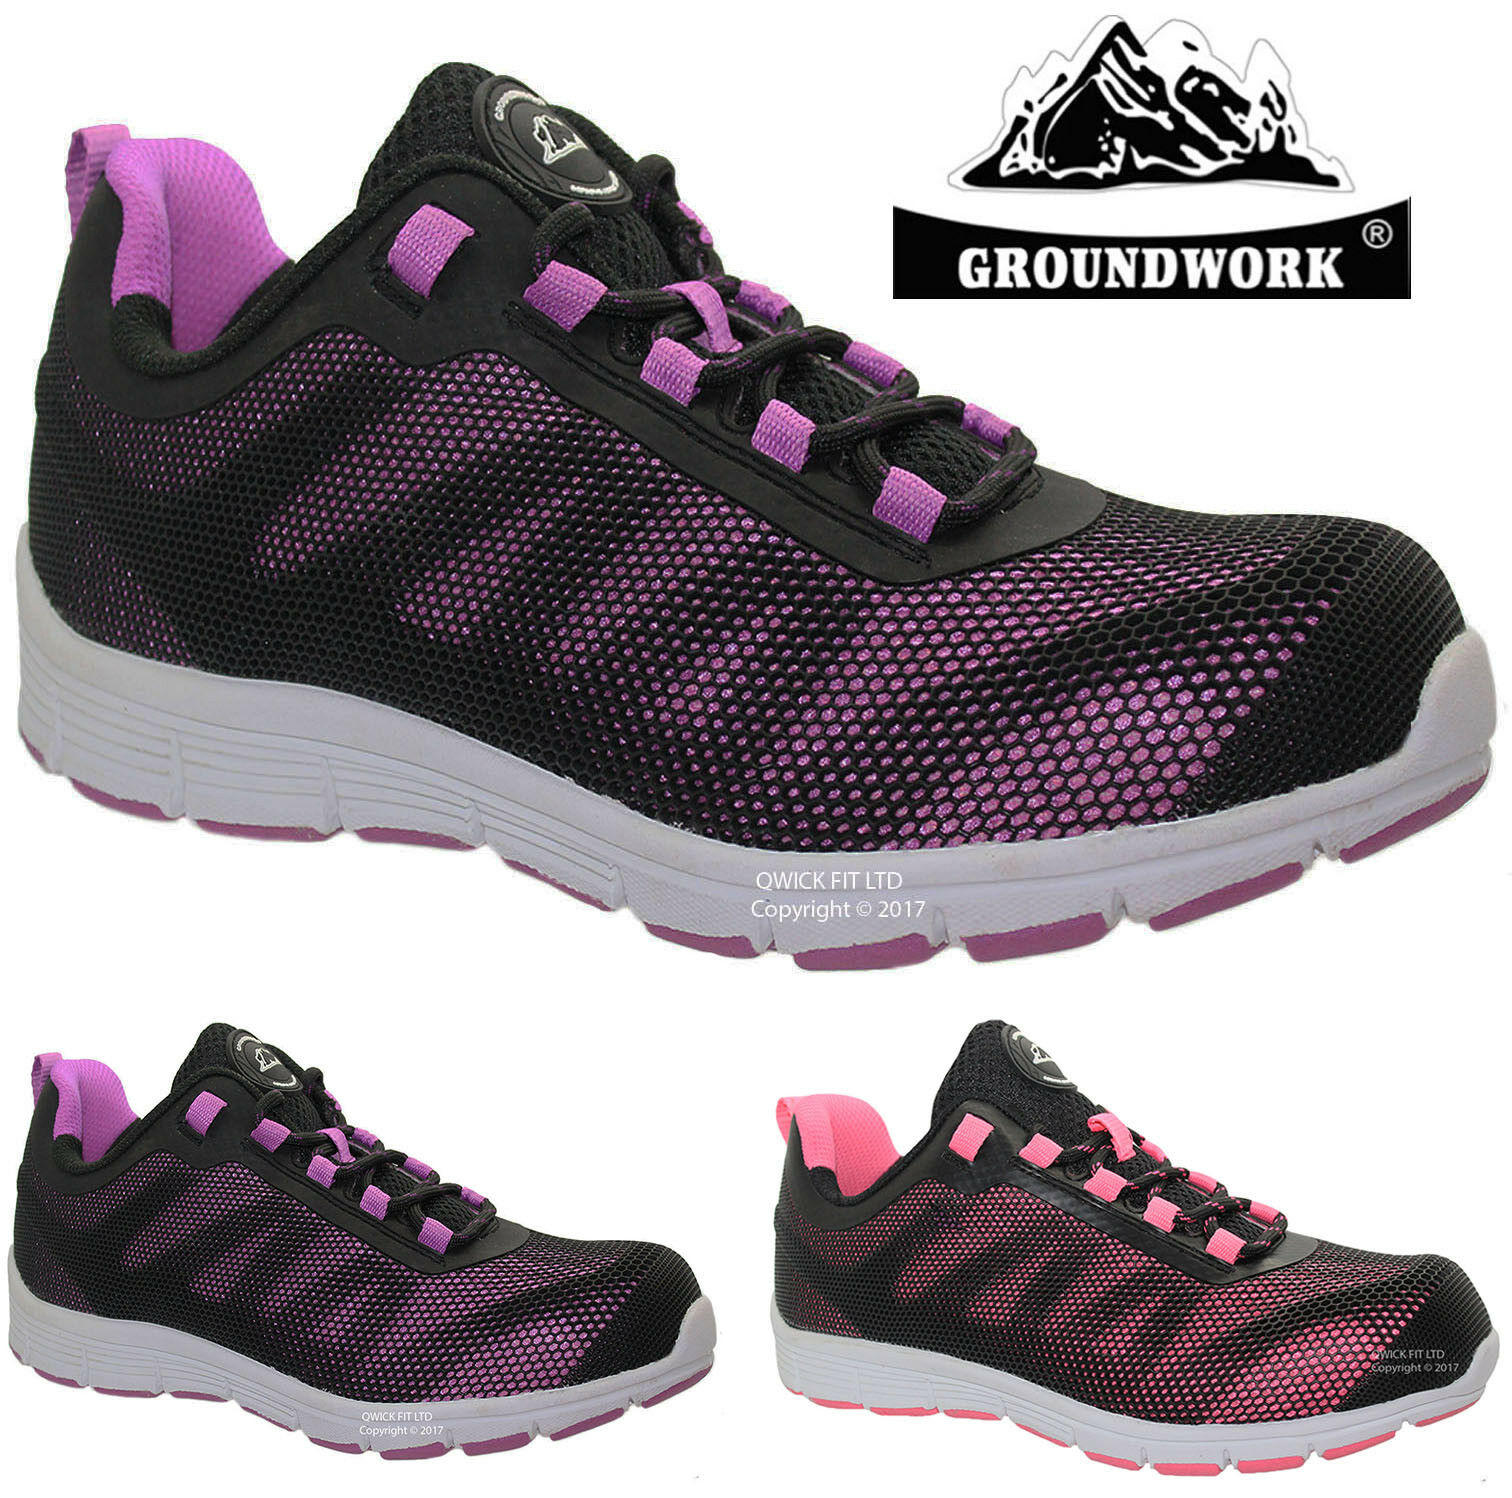 LADIES BLACK GROUNDWORK SAFETY SHOES STEEL TOE CAP WOMENS WORK BOOTS TRAINERS